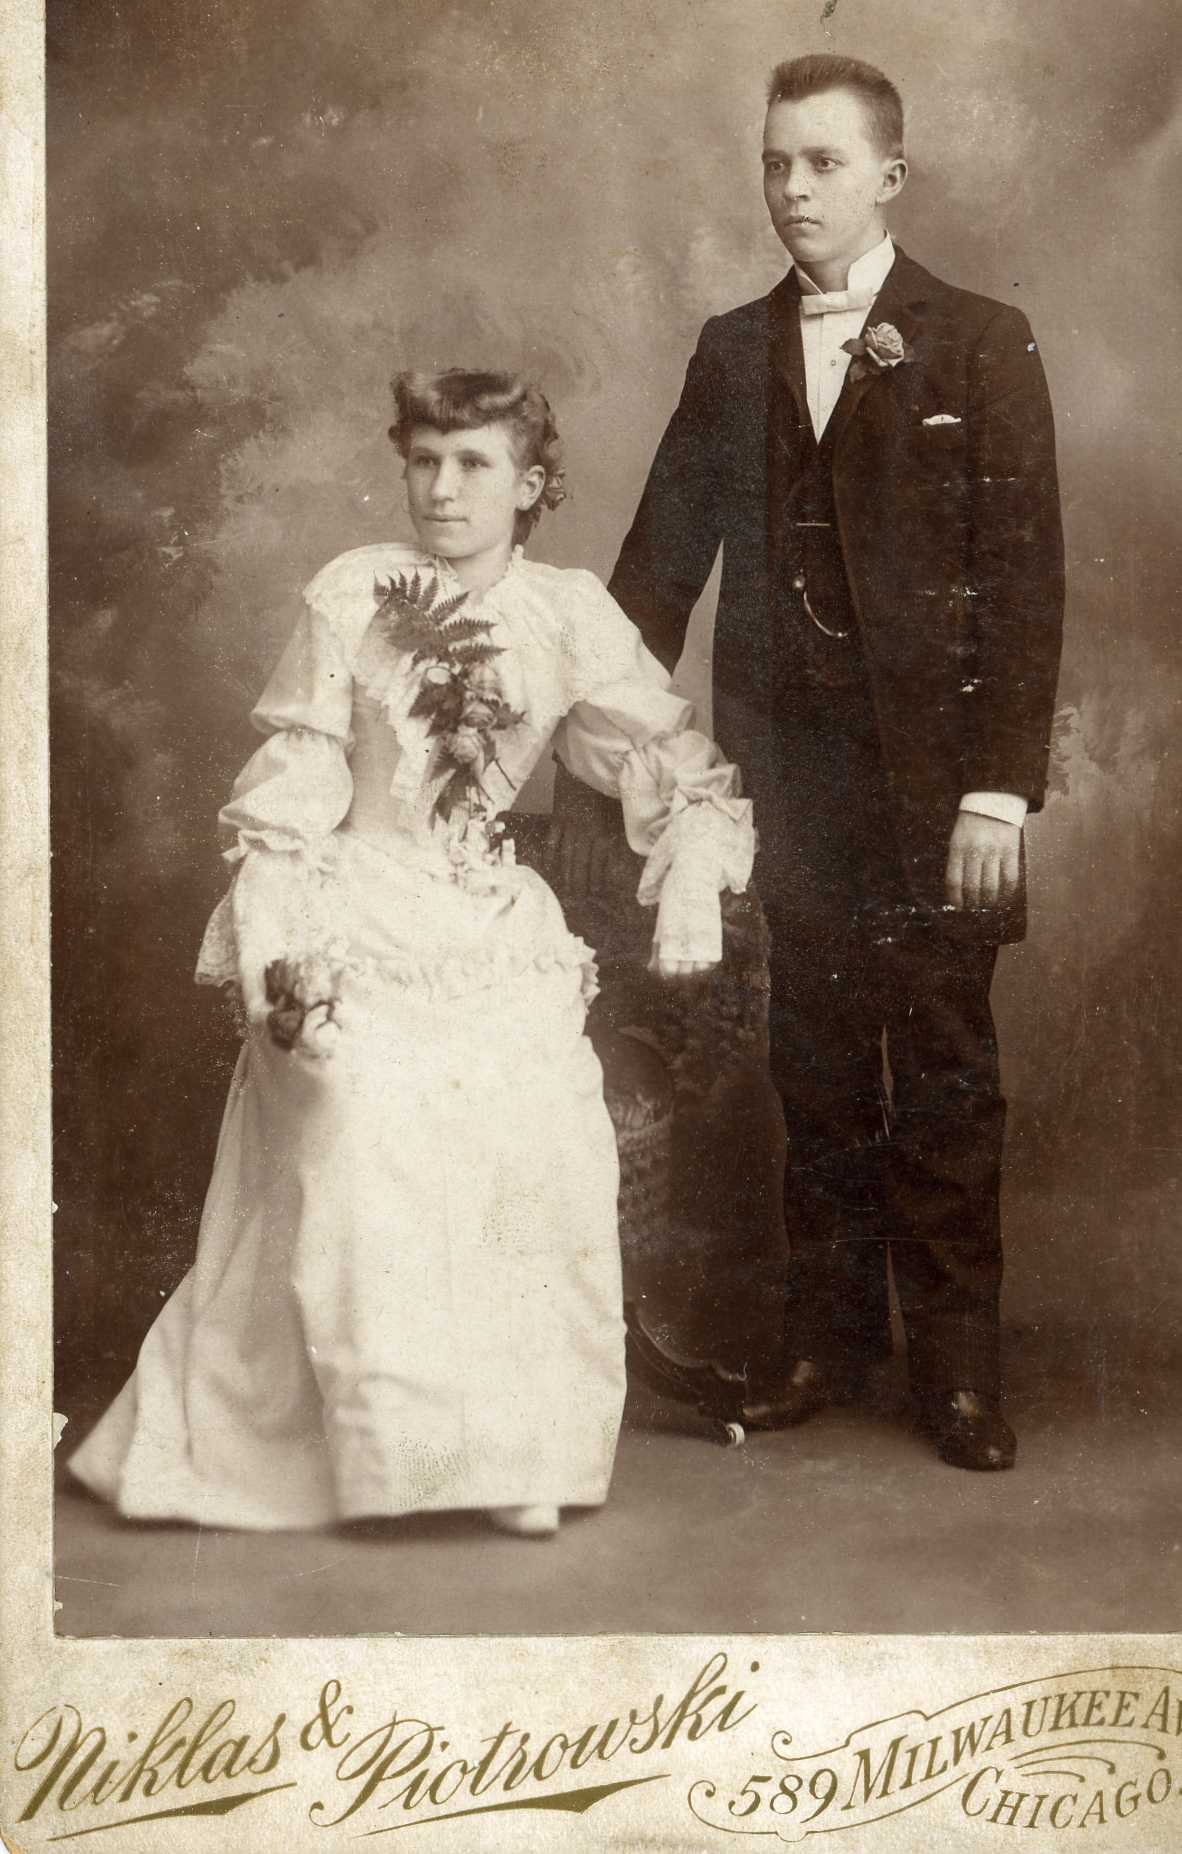 Victorian wedding photo who were they this family really must have had some economic means because this bride is wearing white we know that white dresses were a symbol of wealth because only junglespirit Choice Image